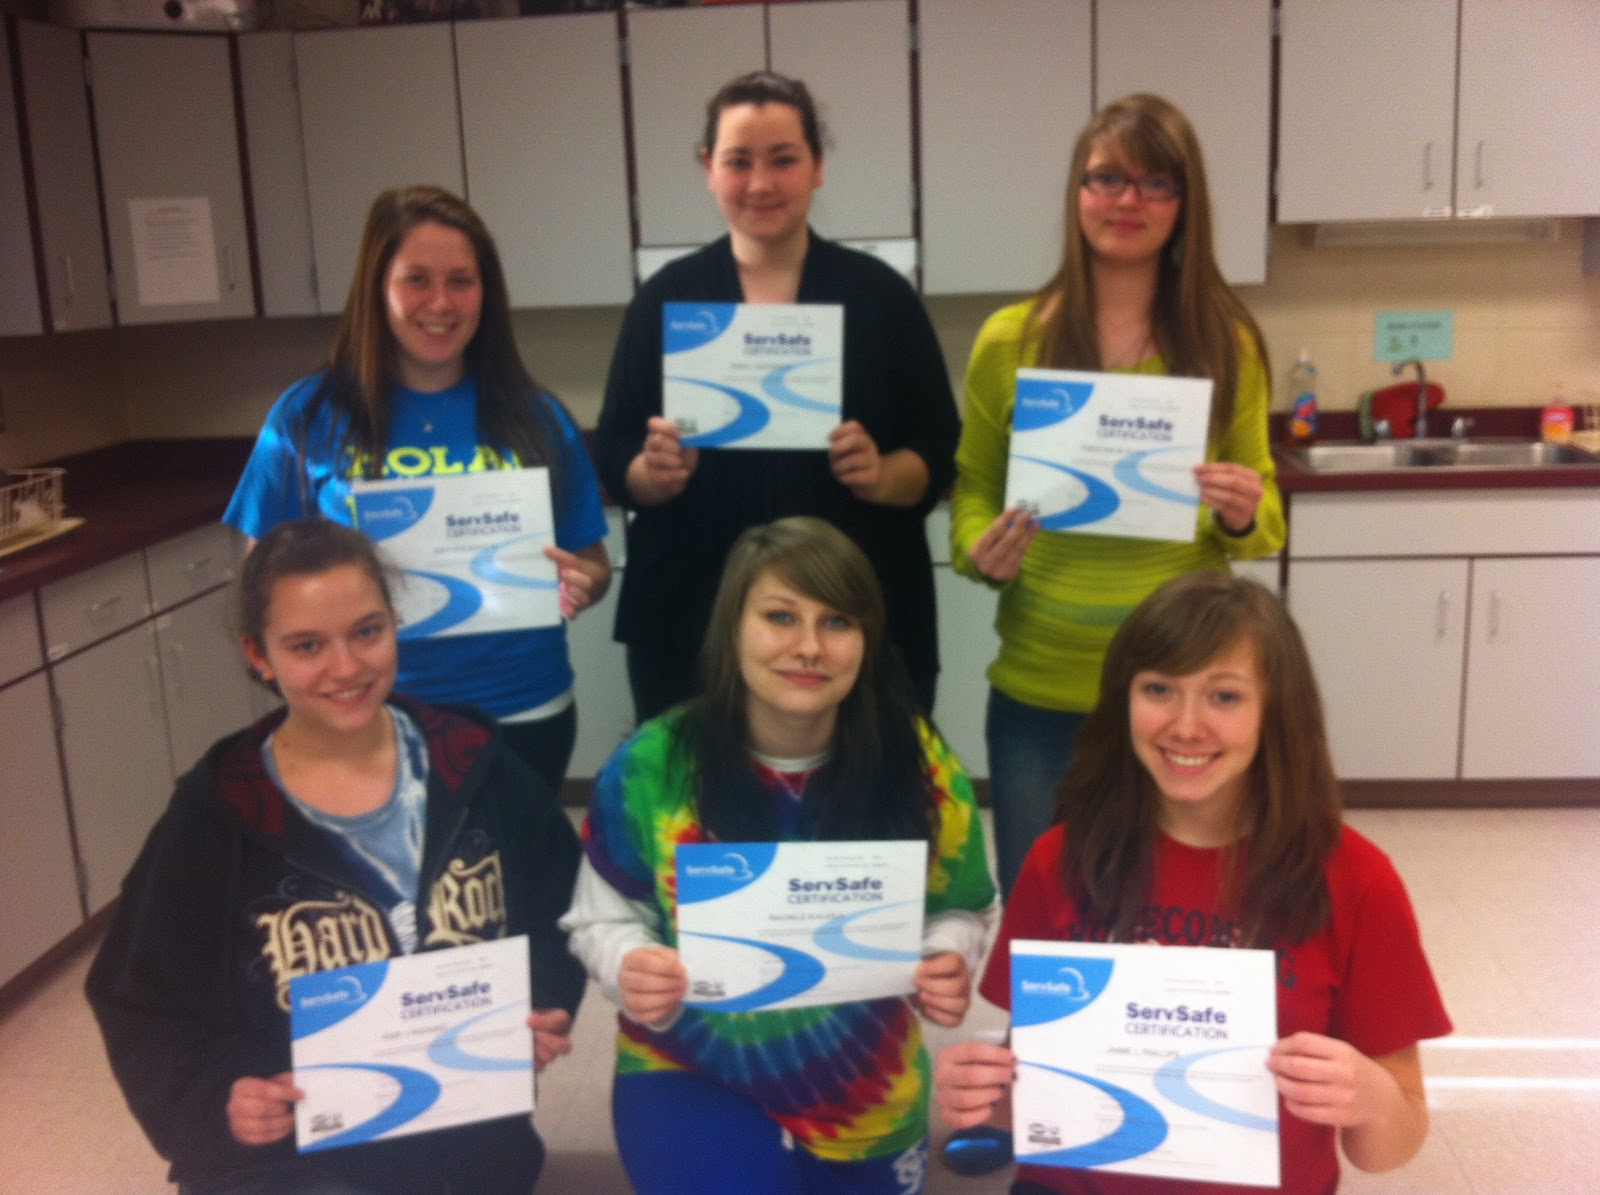 The bulletin board record number of cte students earn servsafe record number of cte students earn servsafe food safety certification xflitez Image collections